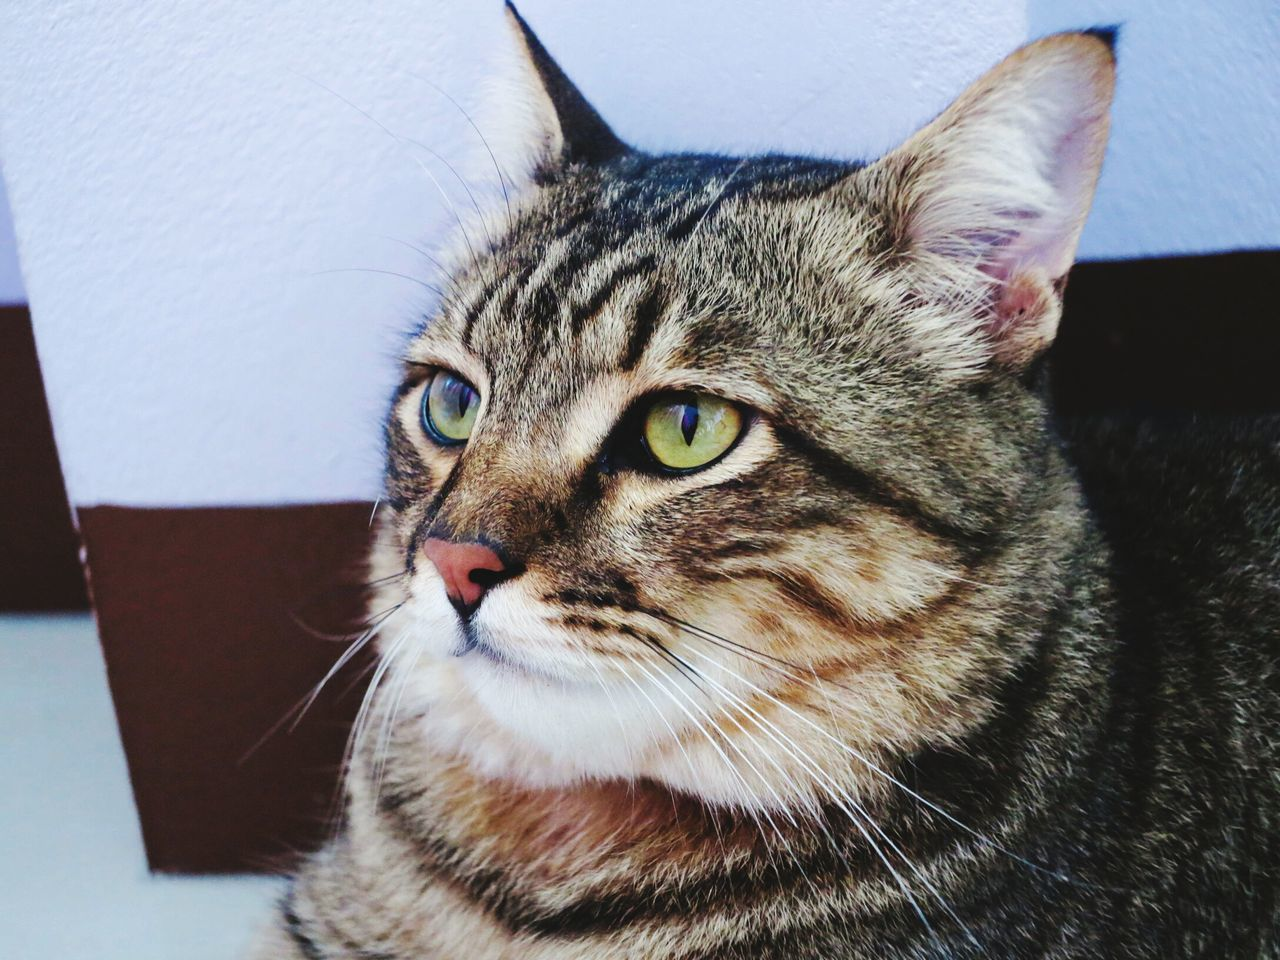 Animal Themes One Animal Domestic Cat Domestic Animals Pets Close-up Yellow Eyes Indoors  Whisker No People Lovelycat Cats 🐱 Cat Ocicat Catface